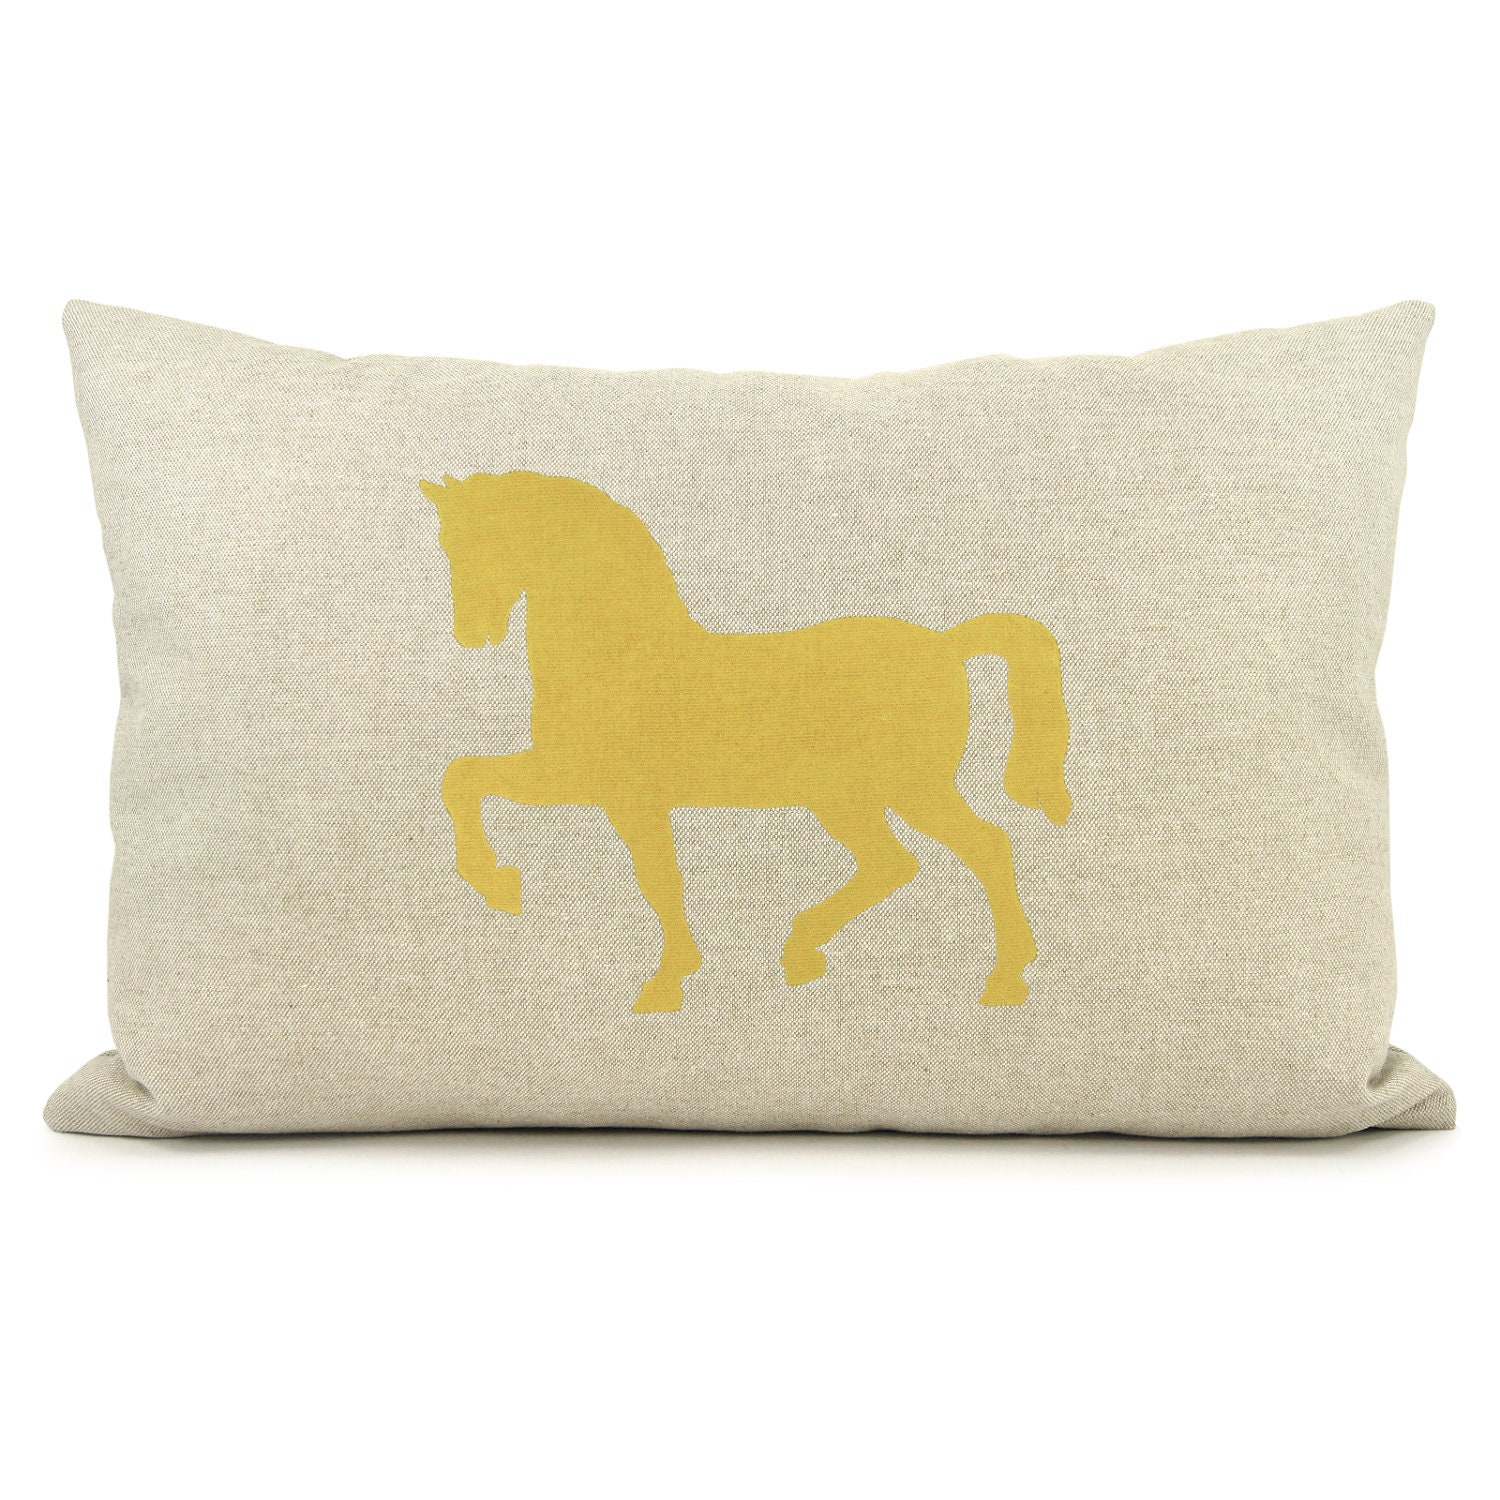 Decorative Pillow Cover 12x18 : 12x18 horse pillow cover Lumbar pillow cover by ClassicByNature